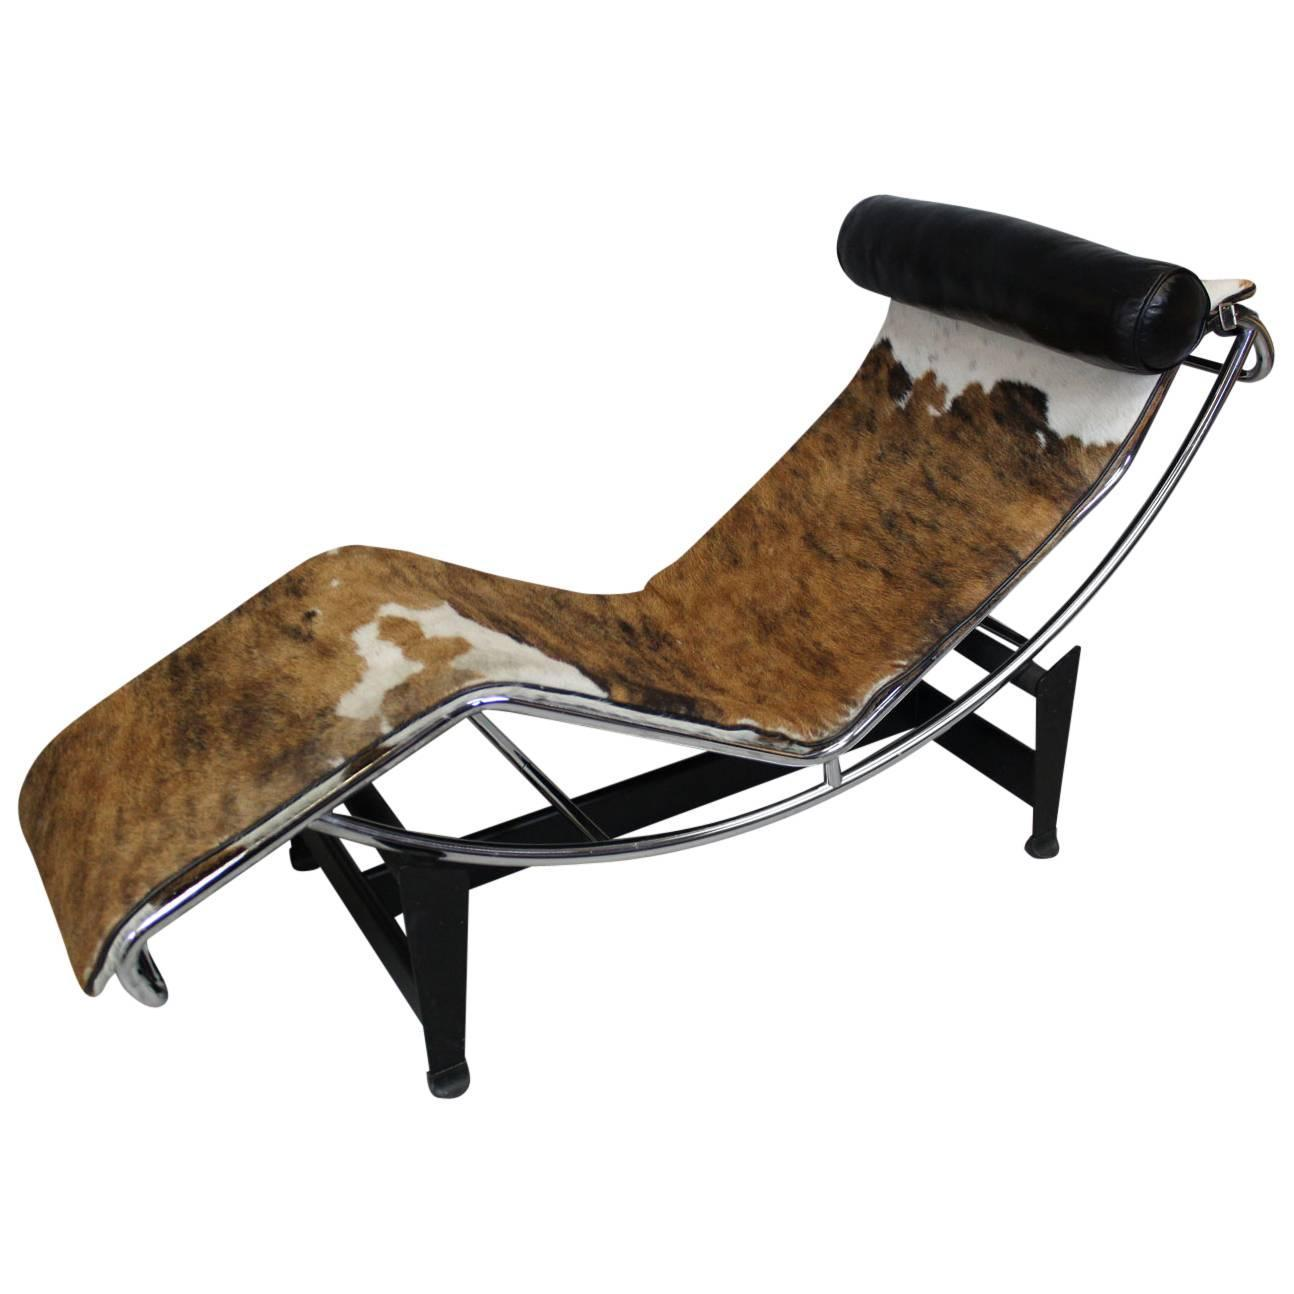 Le corbusier lc4 chaise lounge manufactured by cassina at for Chaise corbusier